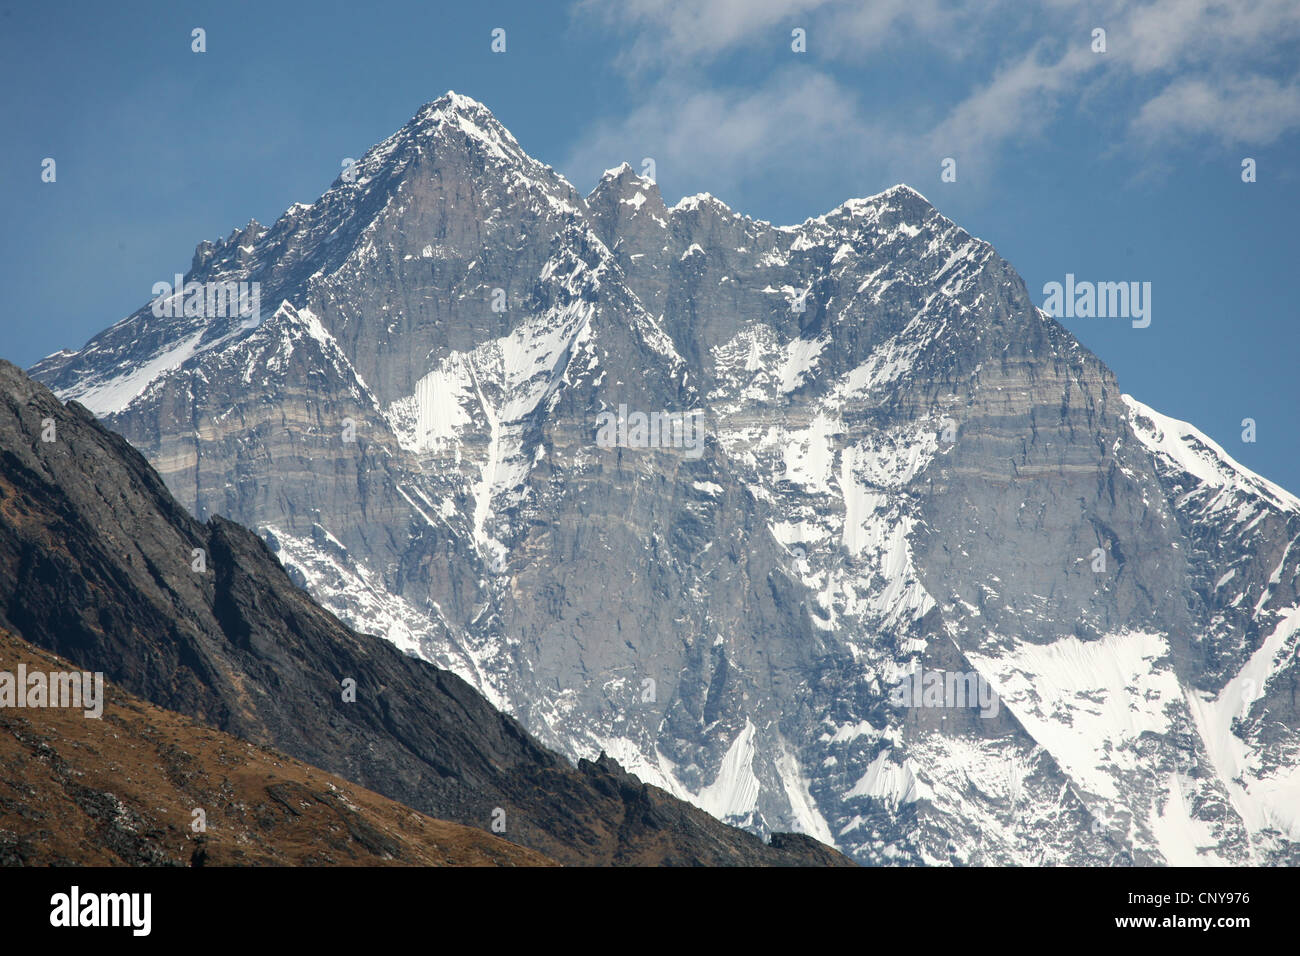 South face of Mount Lhotse (8,516 m) in Khumbu region in the Himalayas, Nepal. View from Khunde village. - Stock Image